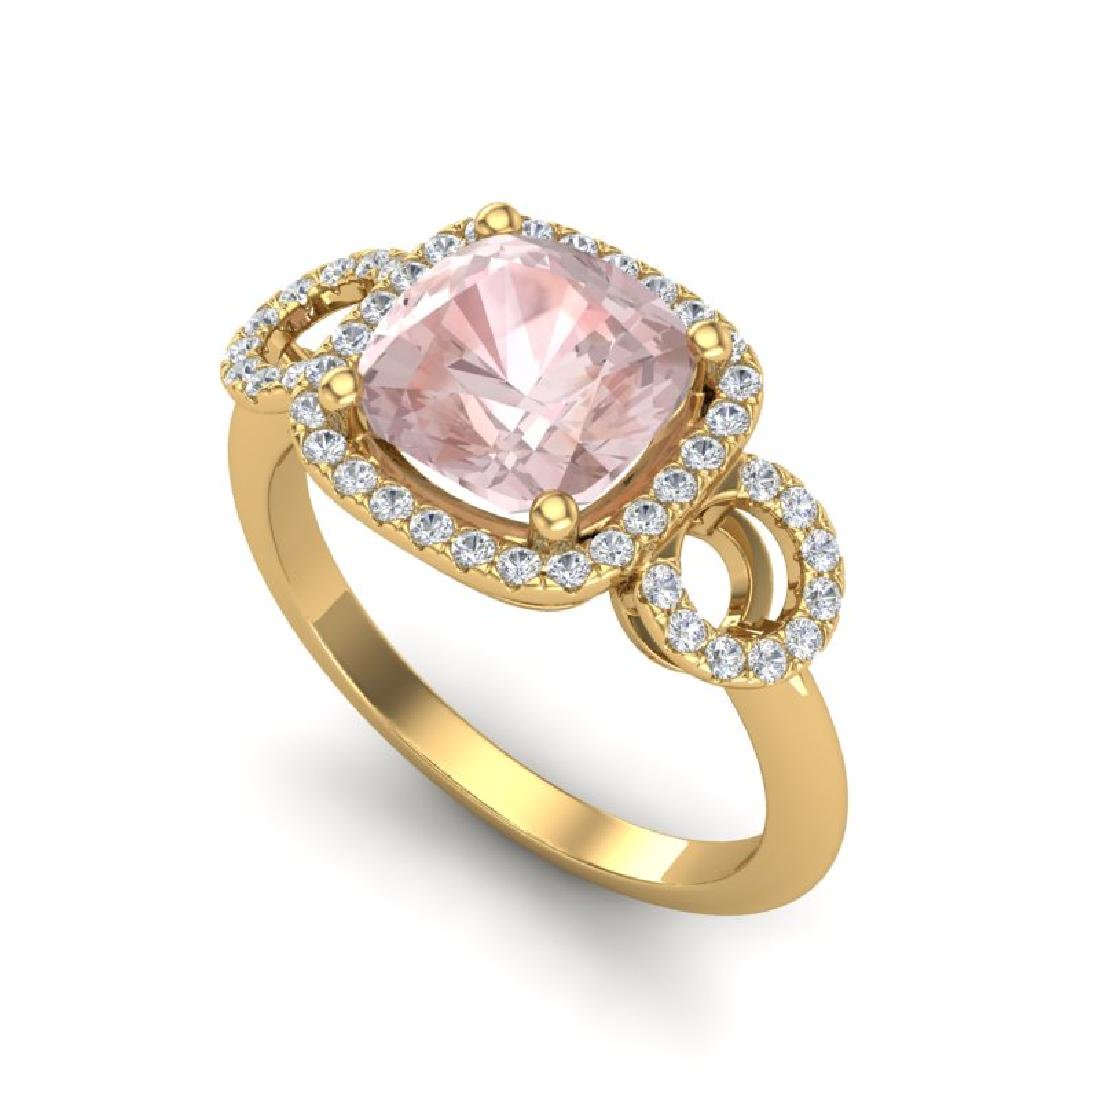 2.75 CTW Morganite & Micro VS/SI Diamond Ring 14K Rose